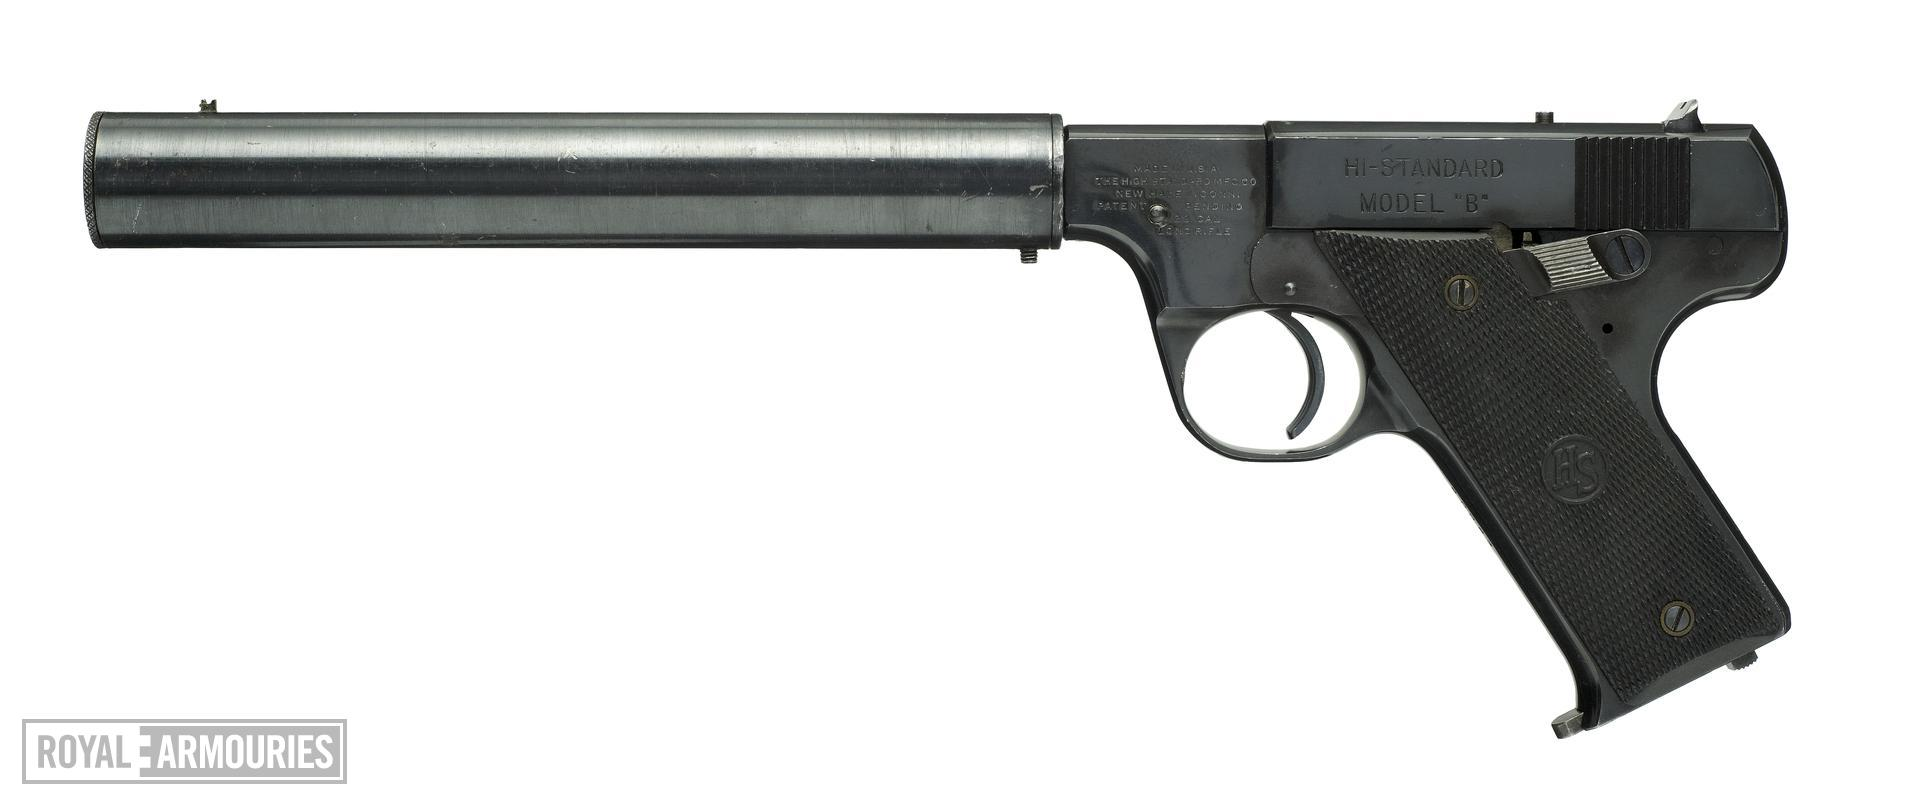 Rimfire self-loading silenced pistol - Hi-Standard Model B